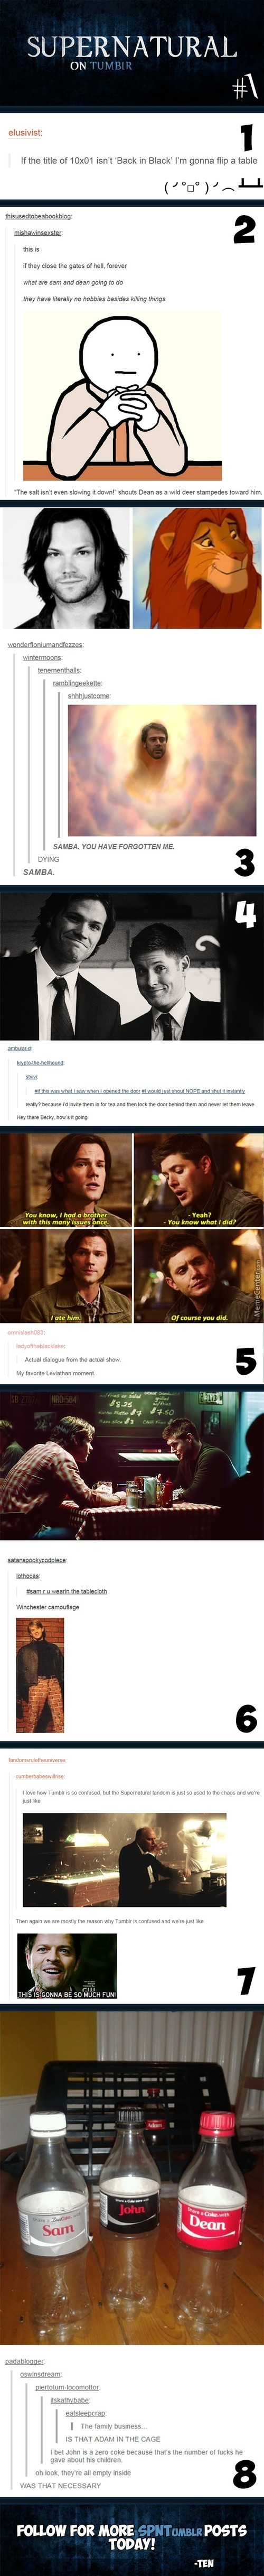 Supernatural On Tumblr #1